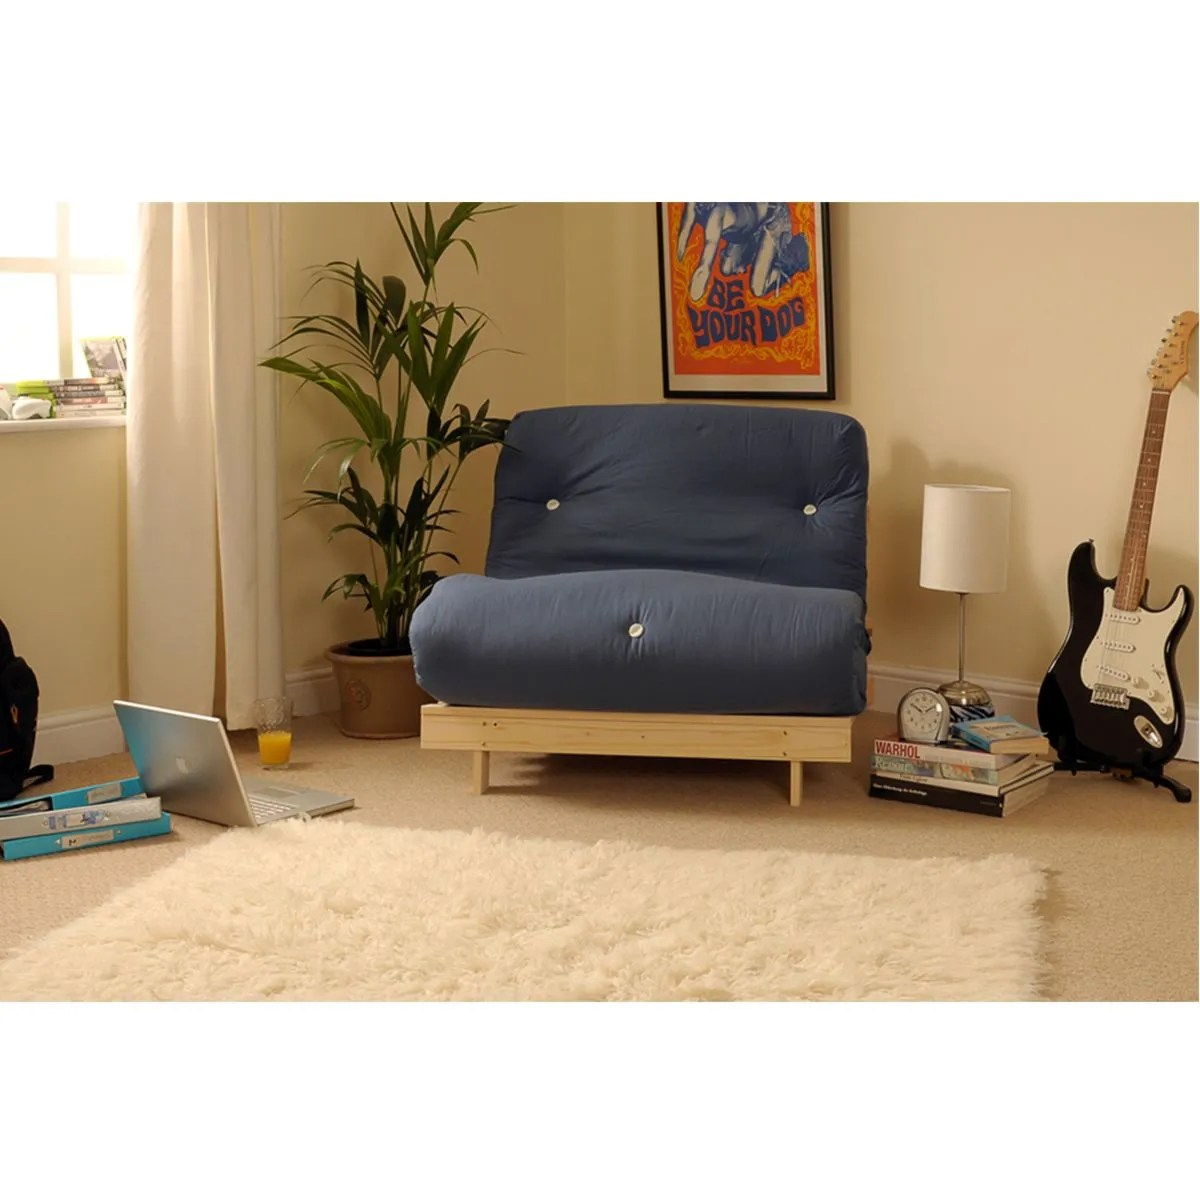 Albury Sofa Bed Set With Tufted Mattress Navy Robert Dyas